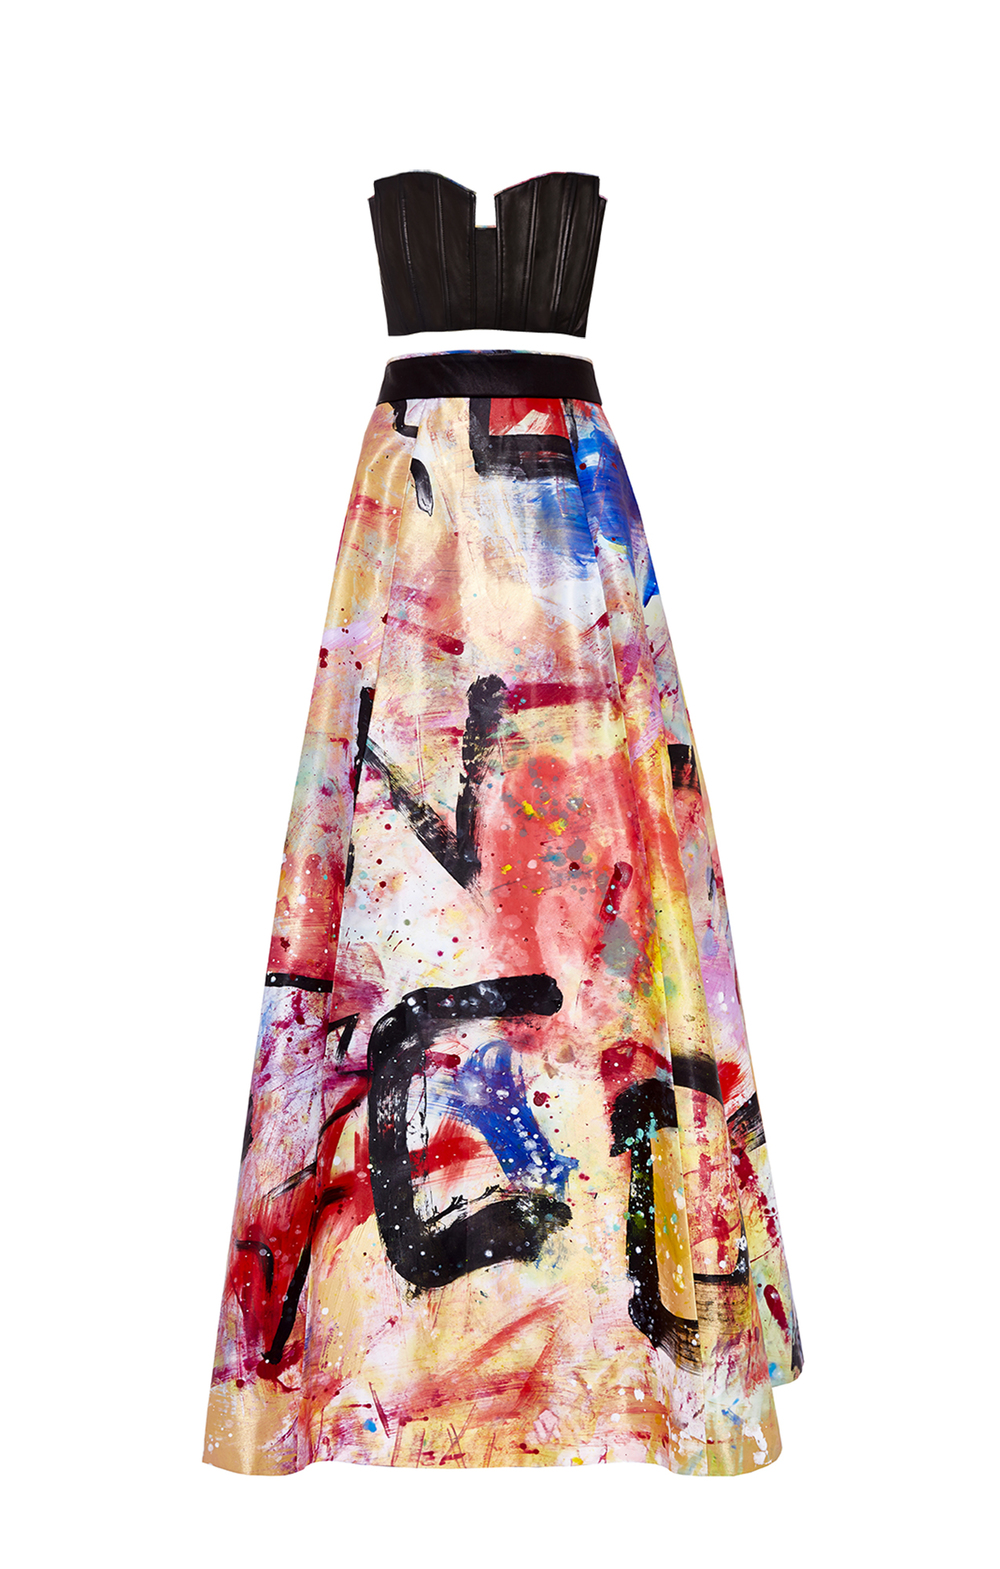 DOMINGO ZAPATA - alice + olivia Strapless Bustier and Ball Skirt Hand-Painted By Domingo Zapata